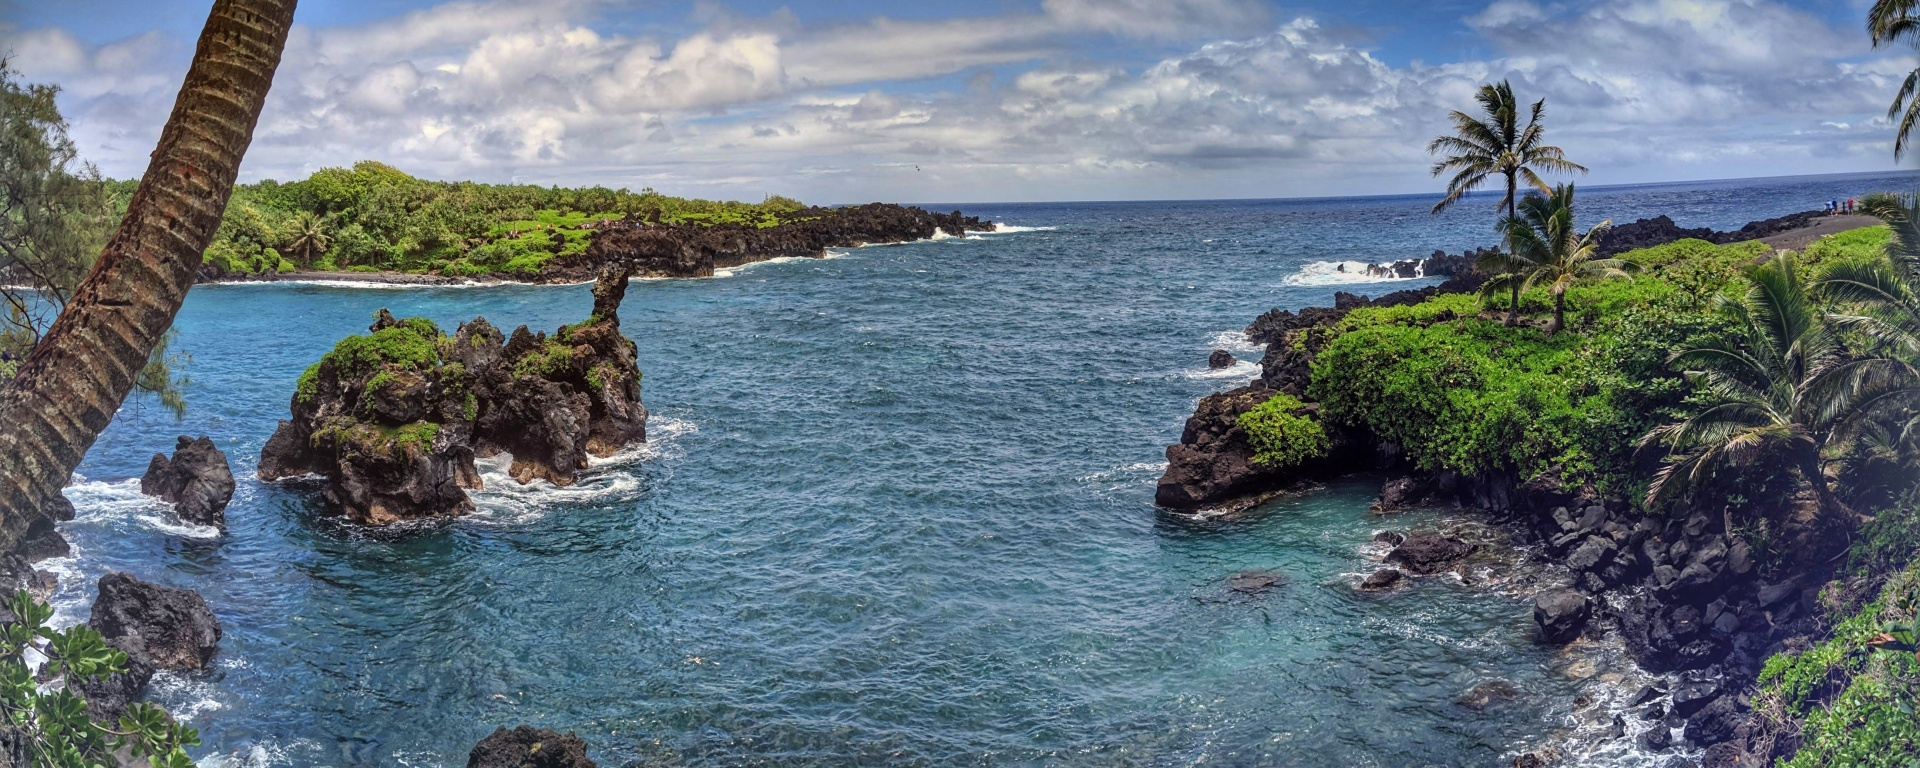 Stop 6 along the Road to Hana: Wai'anapanapa State Park.